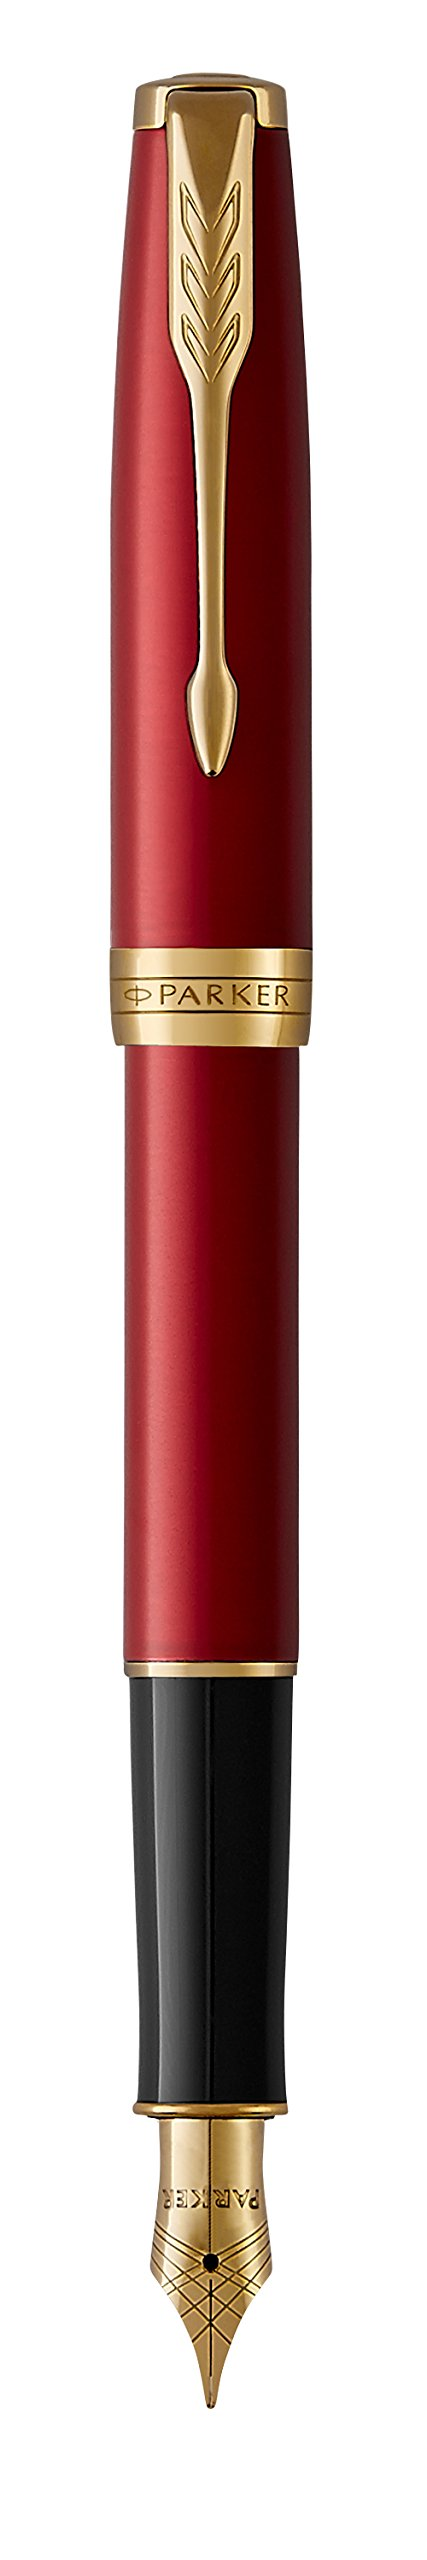 PARKER Sonnet Fountain Pen, Red Lacquer with Gold Trim, Medium Nib (1931474) by Parker (Image #5)